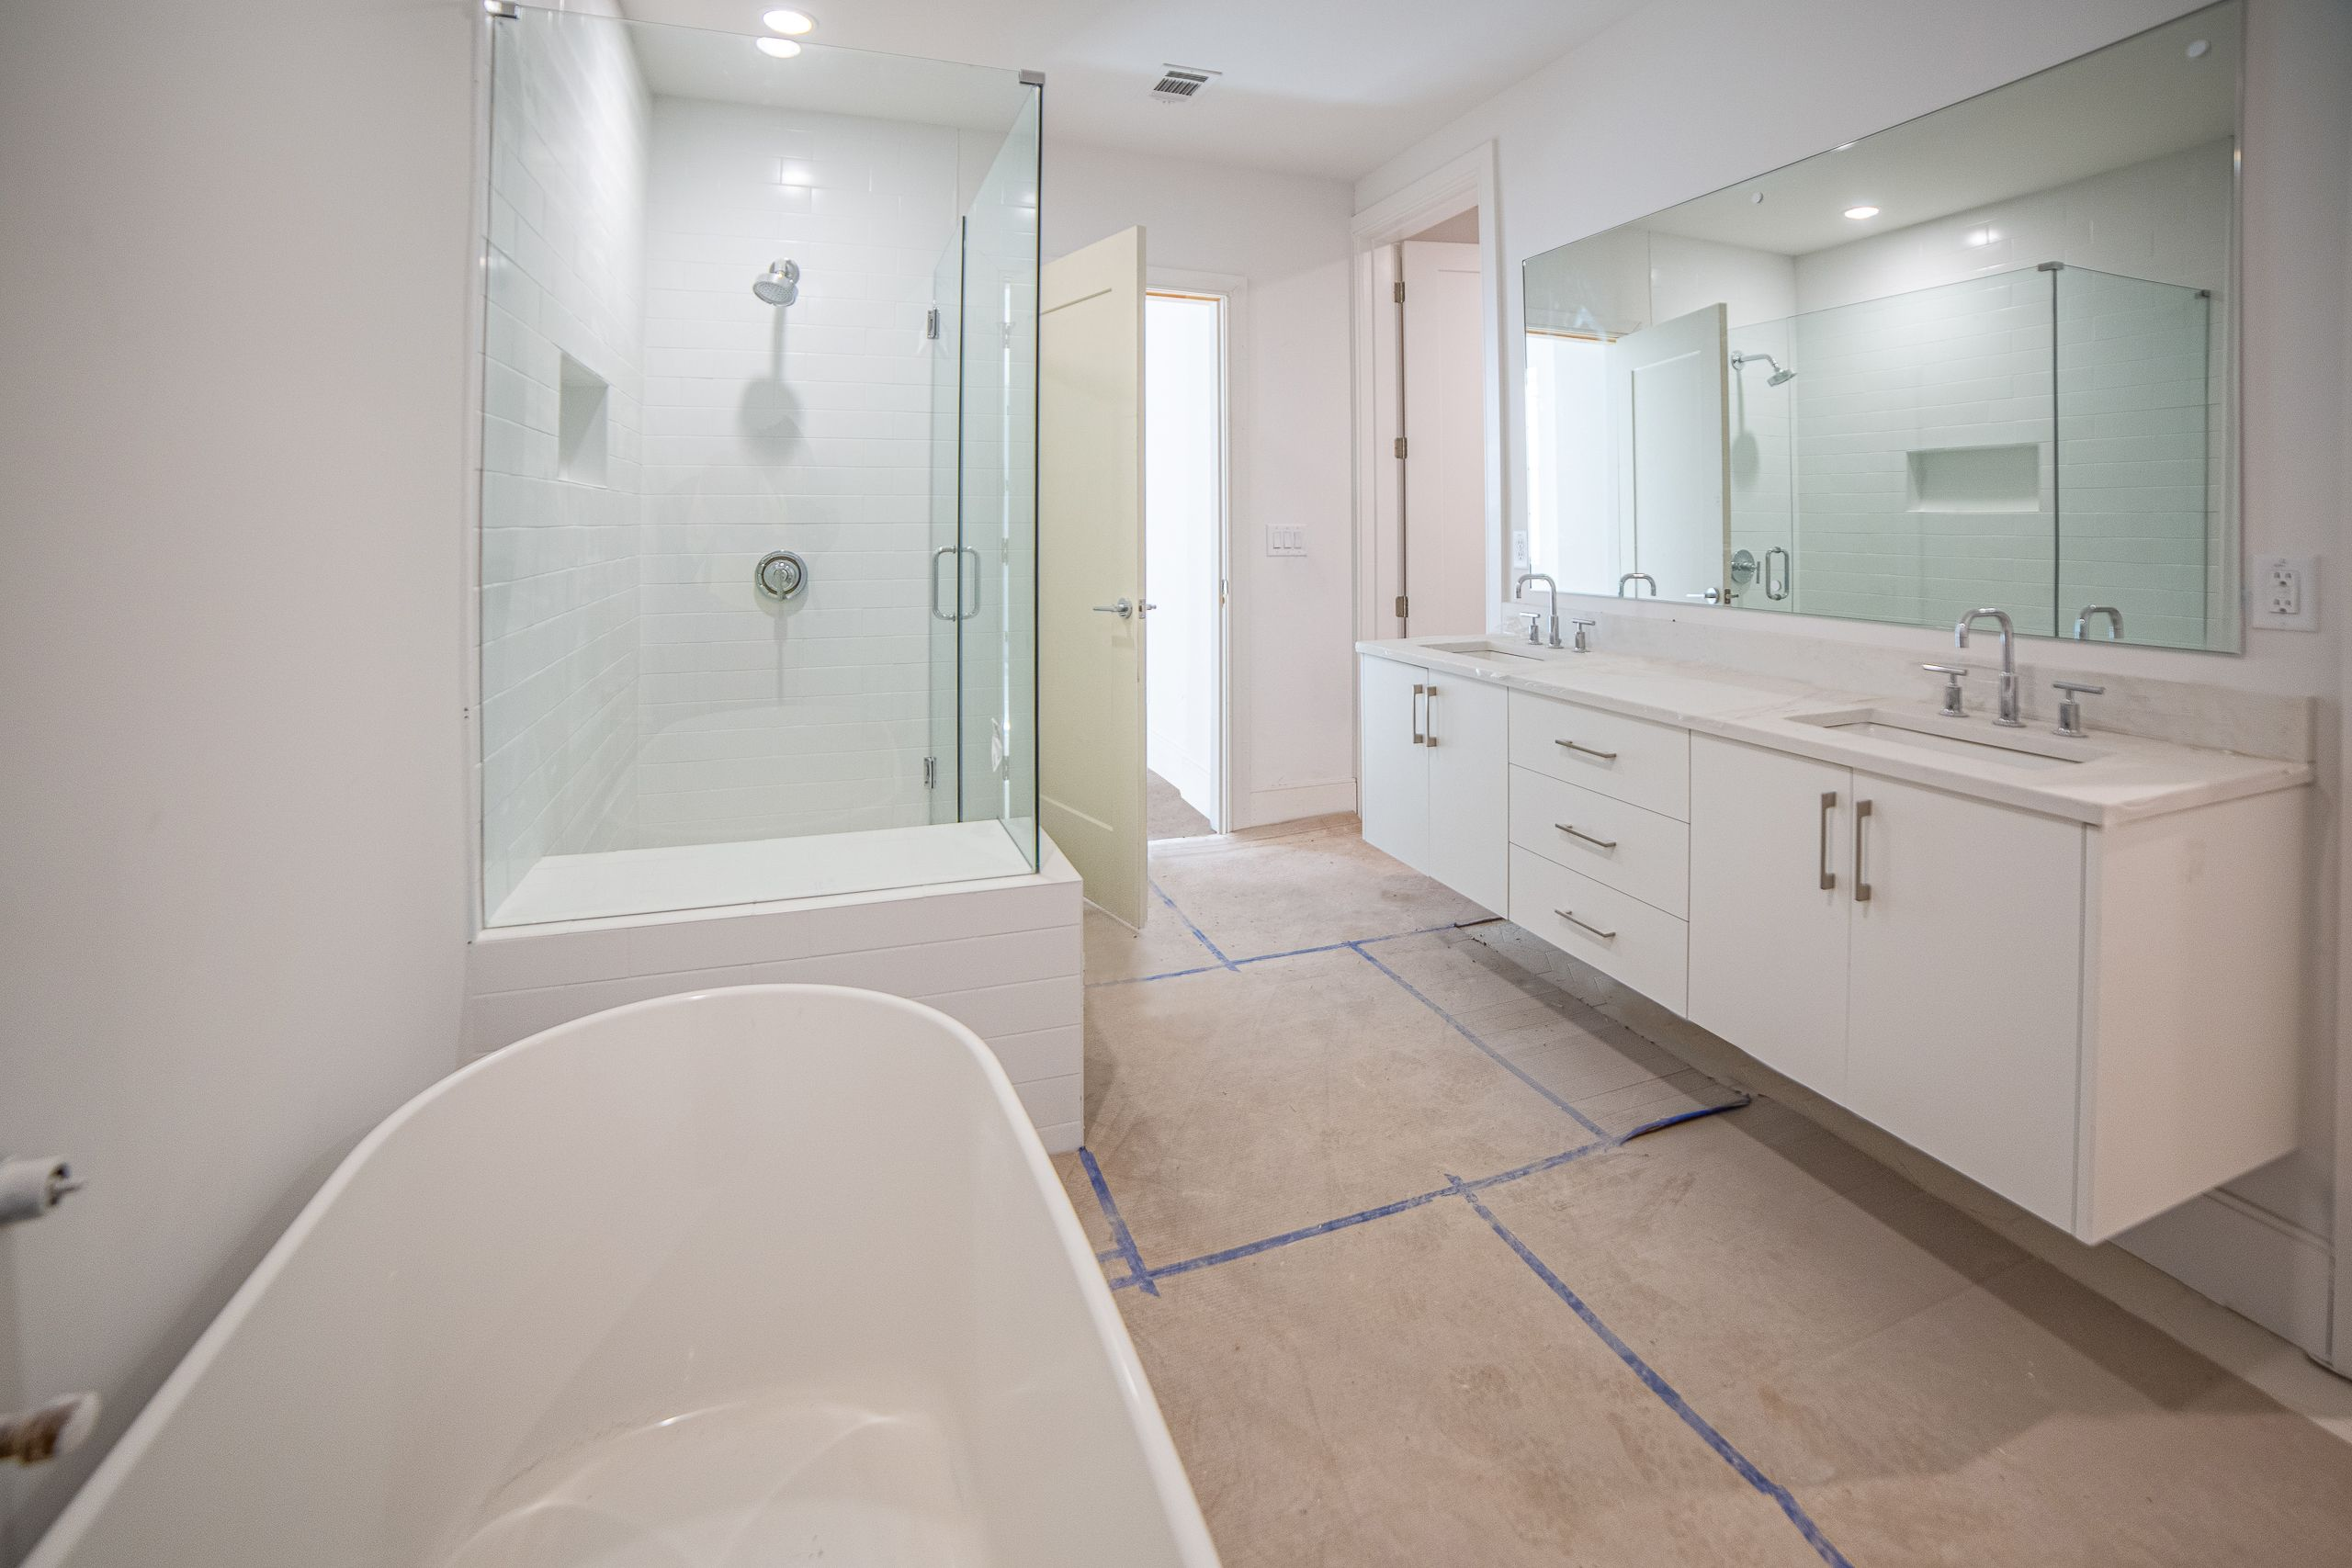 Bathroom featured in the Olmsted Condo By Minerva Homes in Atlanta, GA